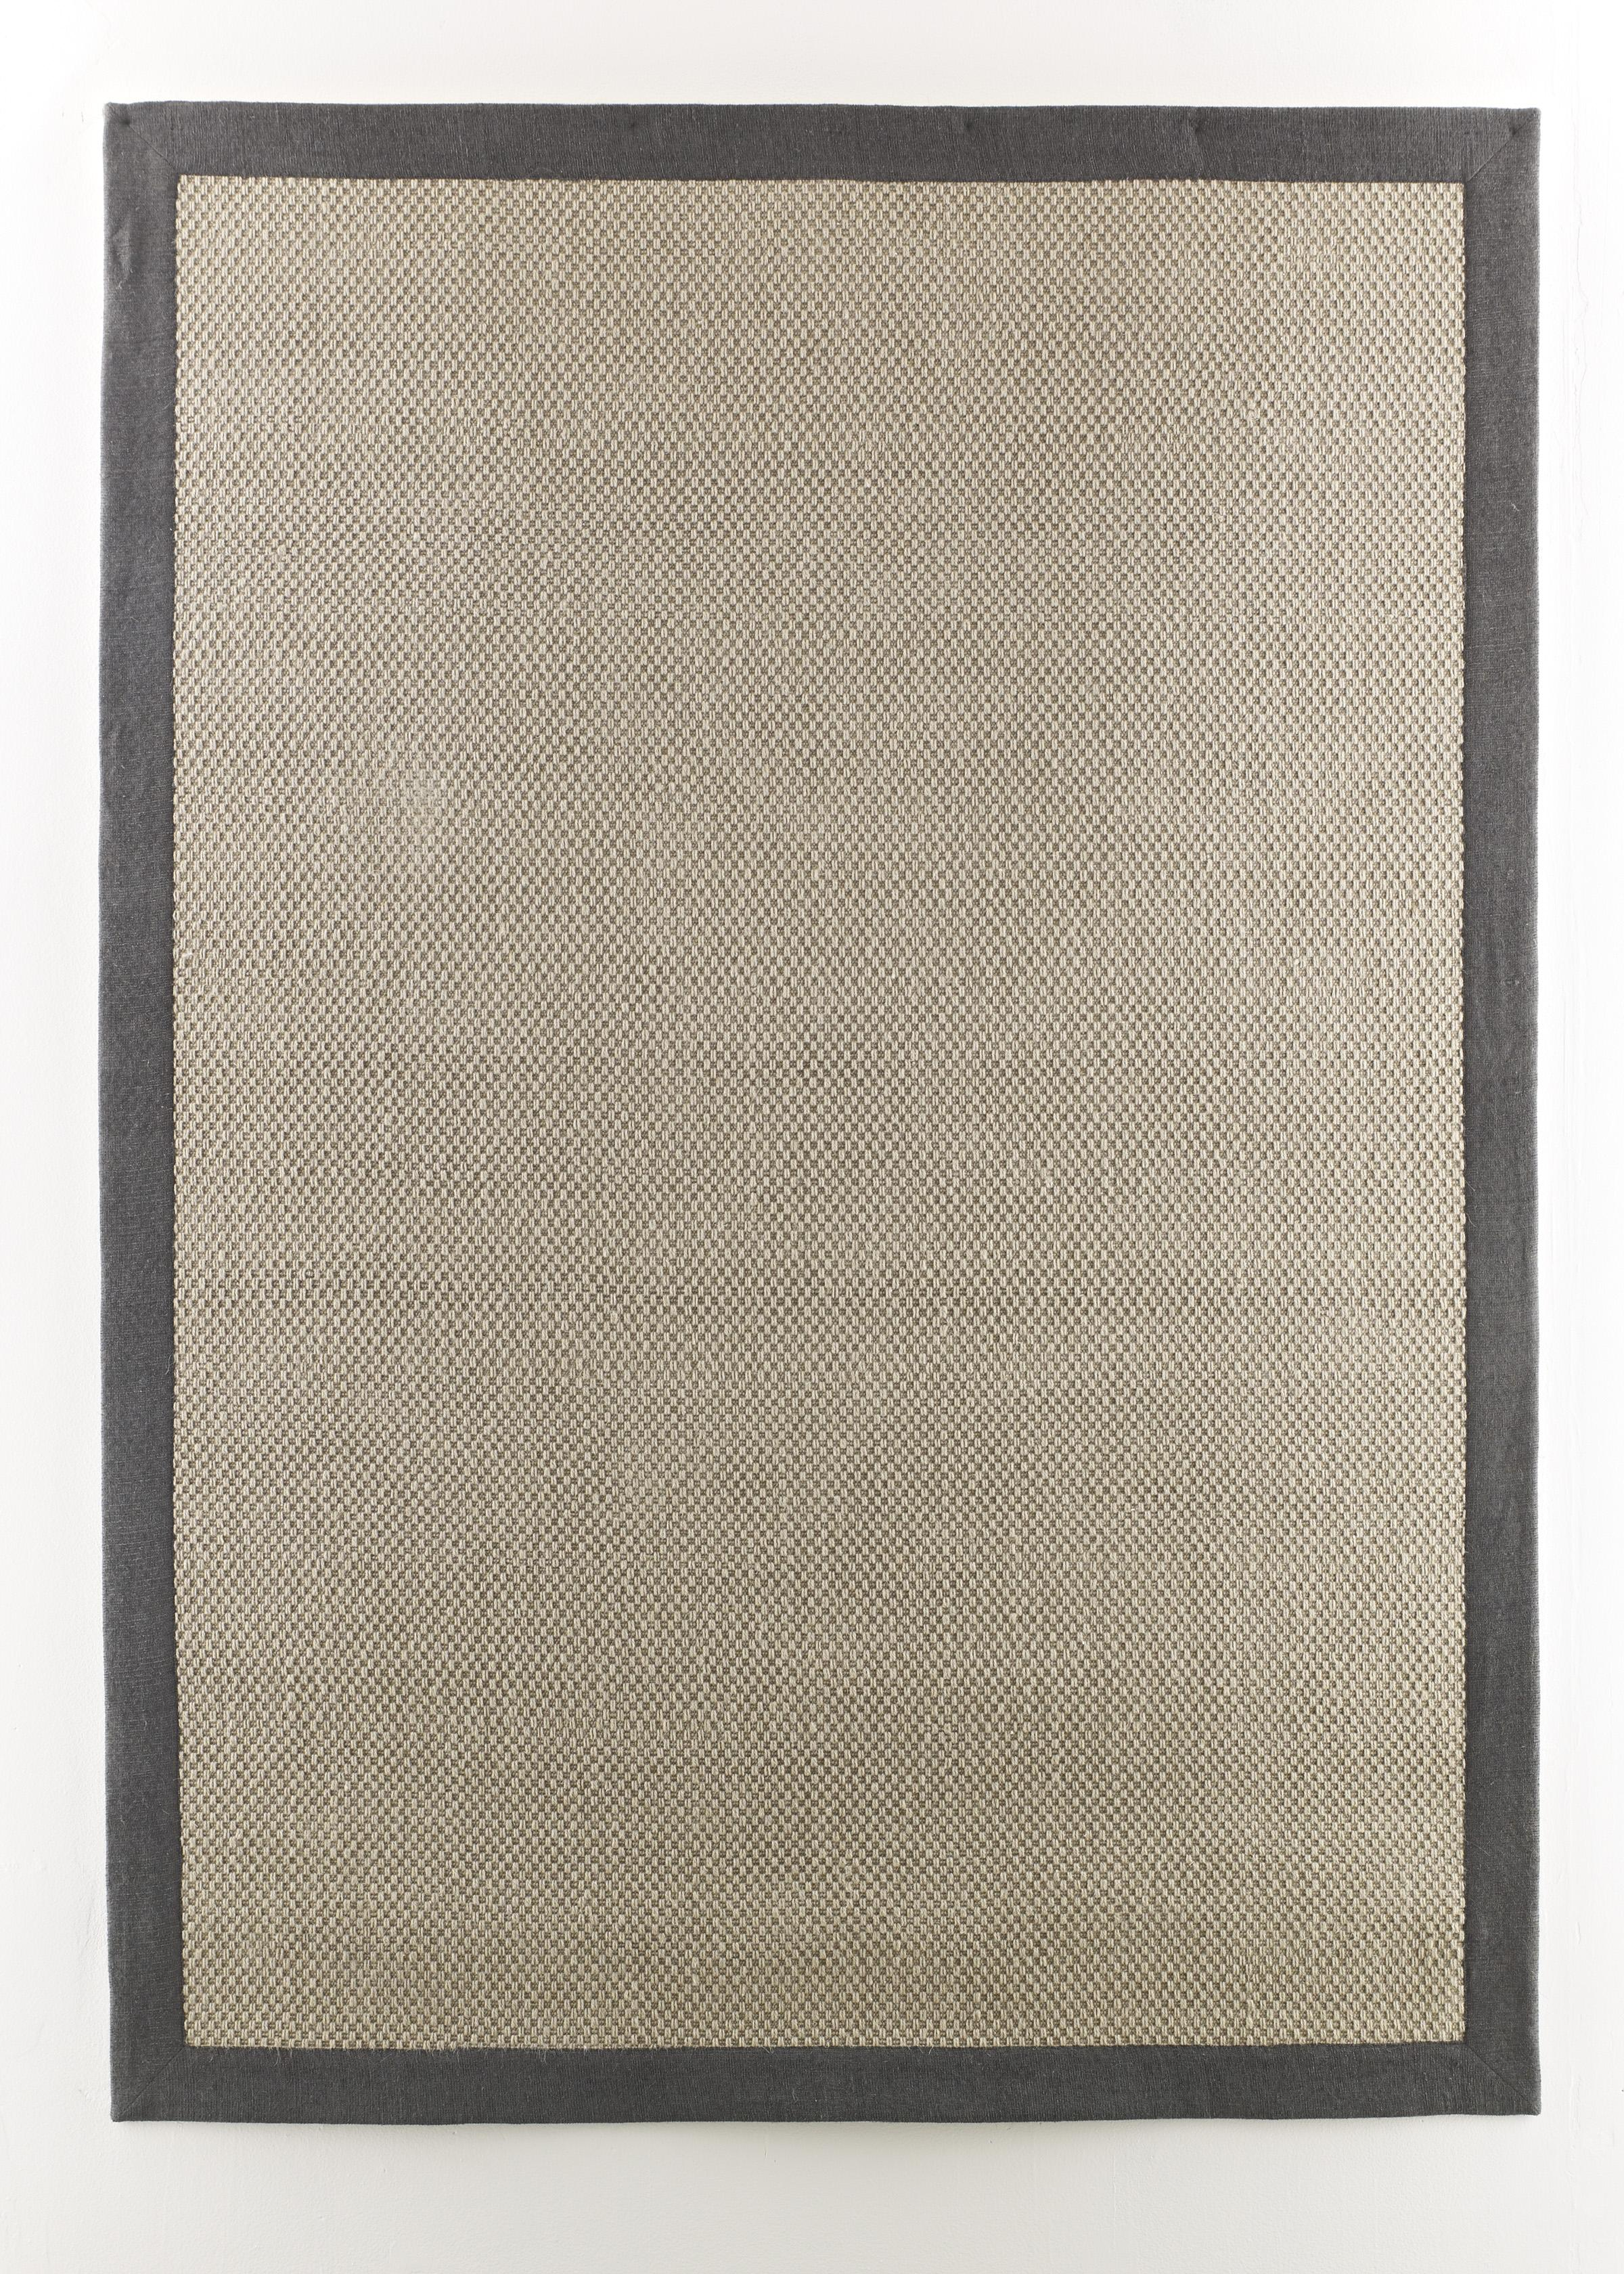 Signature Design by Ashley Transitional Area Rugs Delta City - Steel Medium Rug - Item Number: R297002